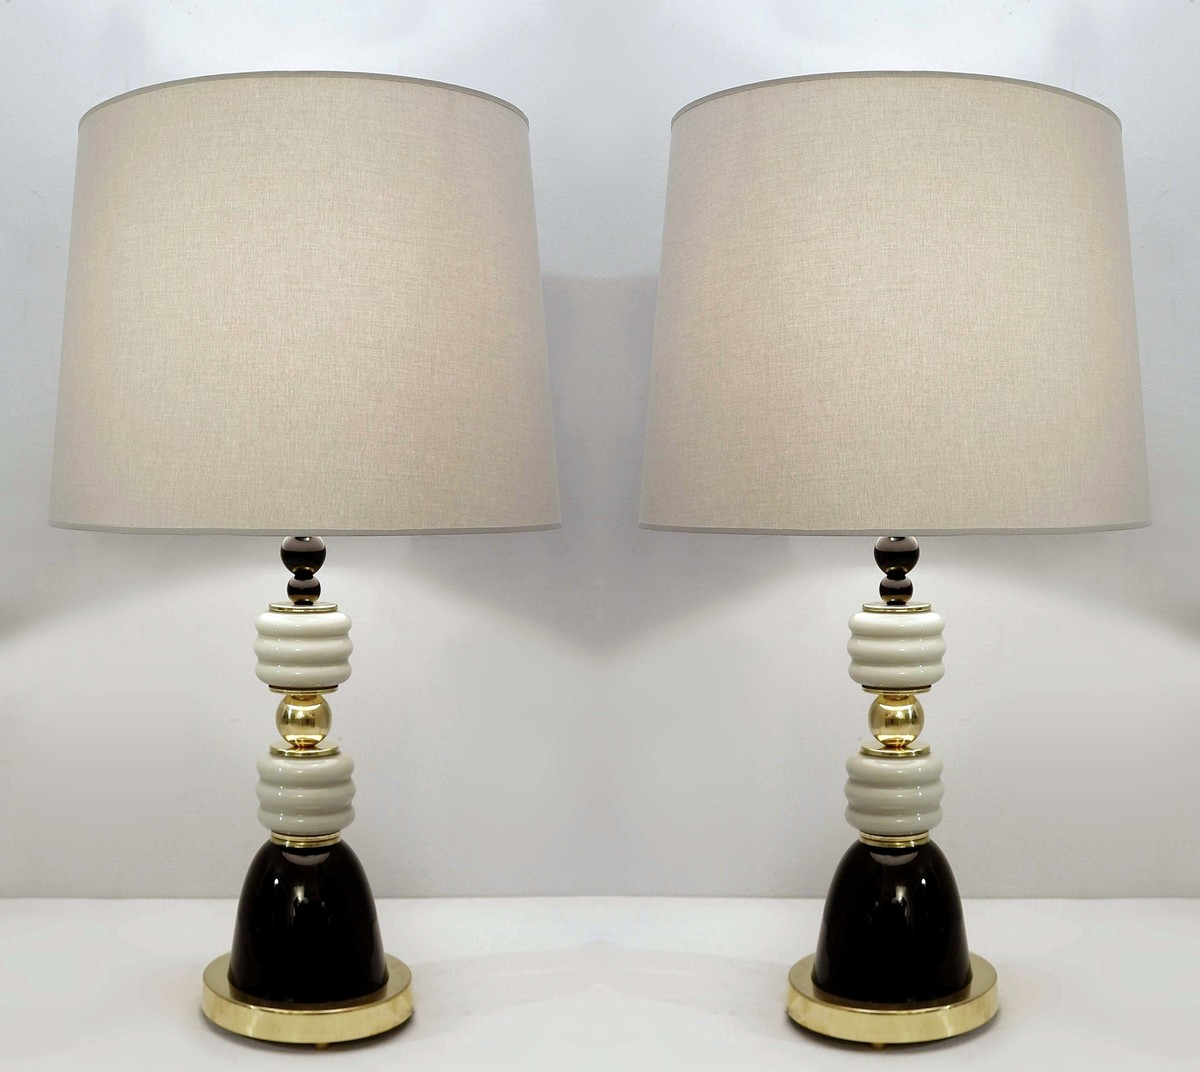 Pair Of Italian Table Lamps In Brass And Gray Black Glass Glass Ceiling Search Results European Antiques Decorative